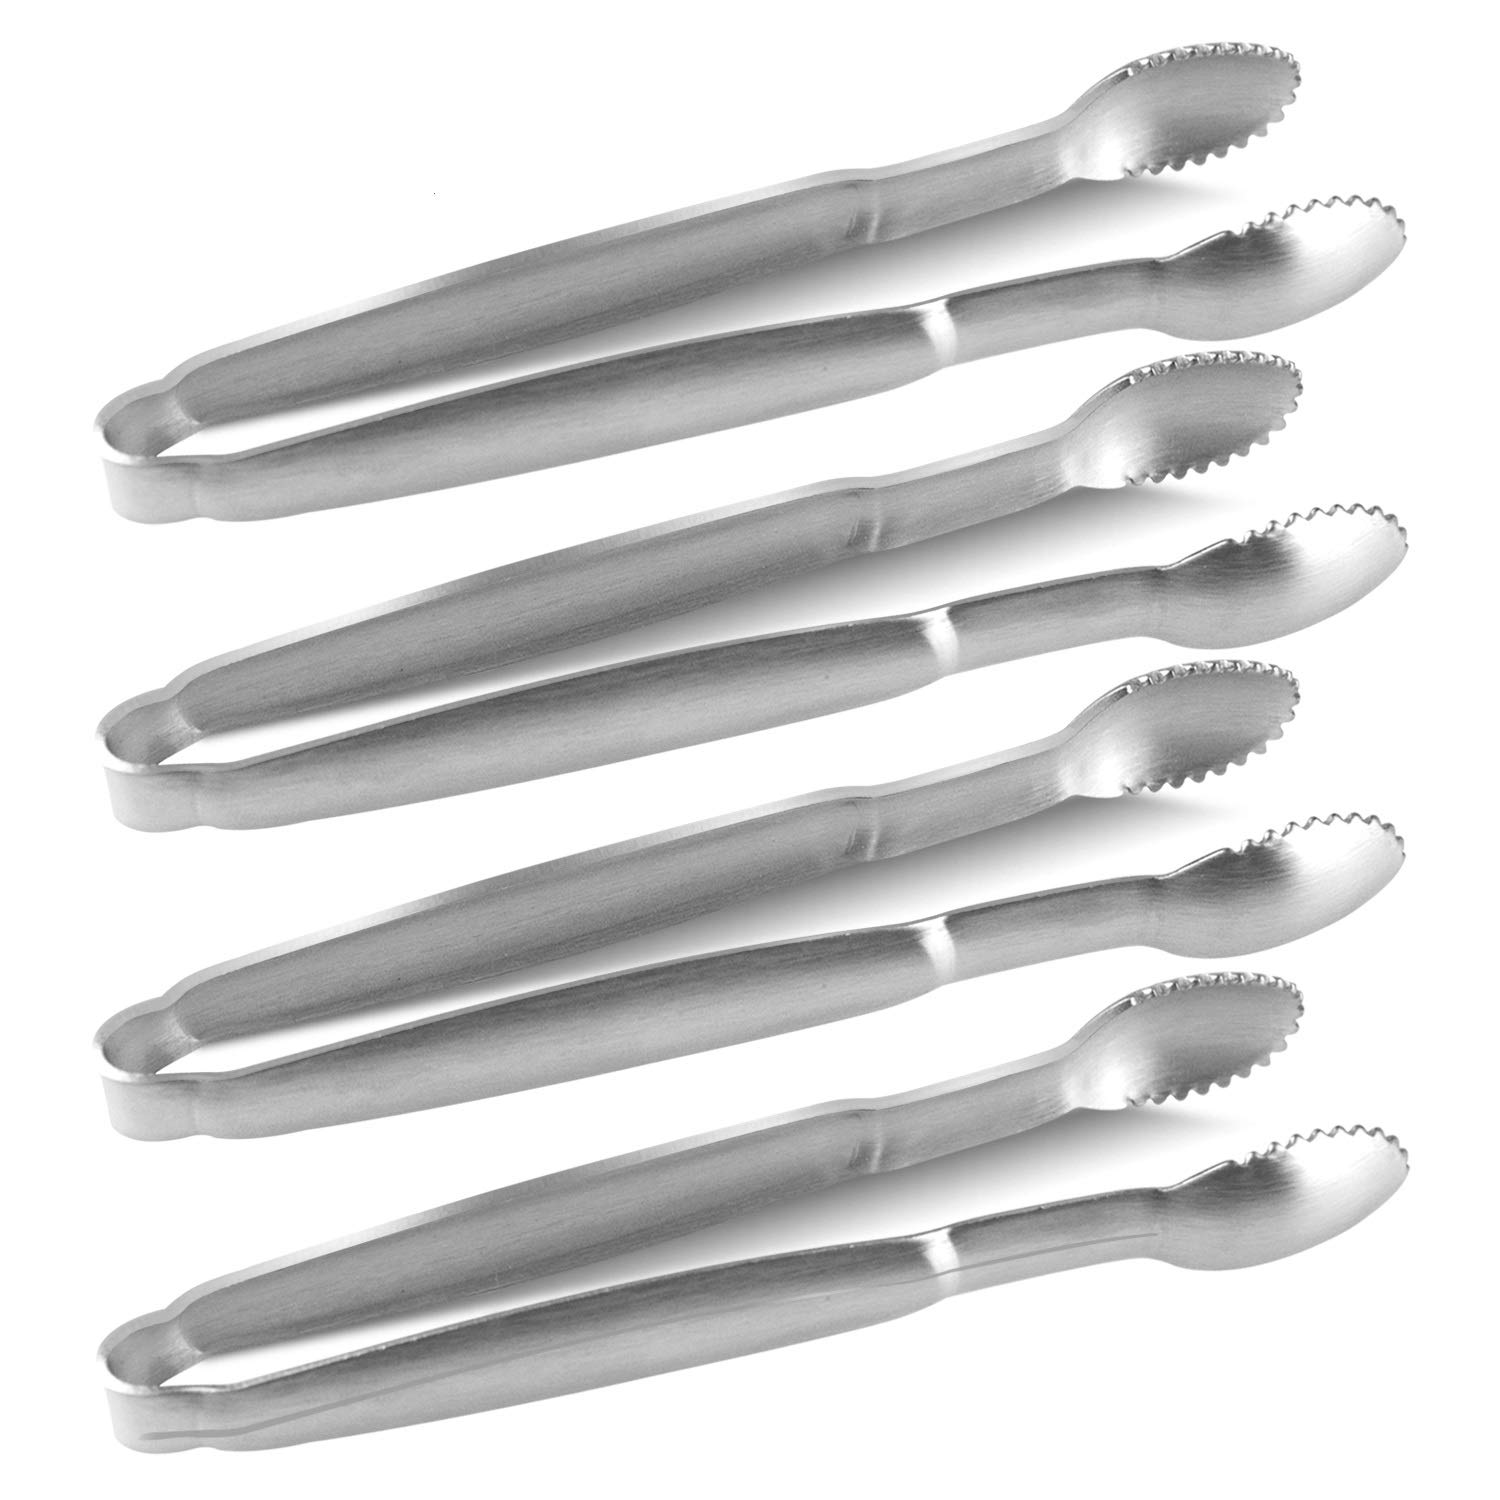 Sugar Tongs for Tea Party, Appetizer, Dessert and Cheese, 4 Pack LINPOZONE